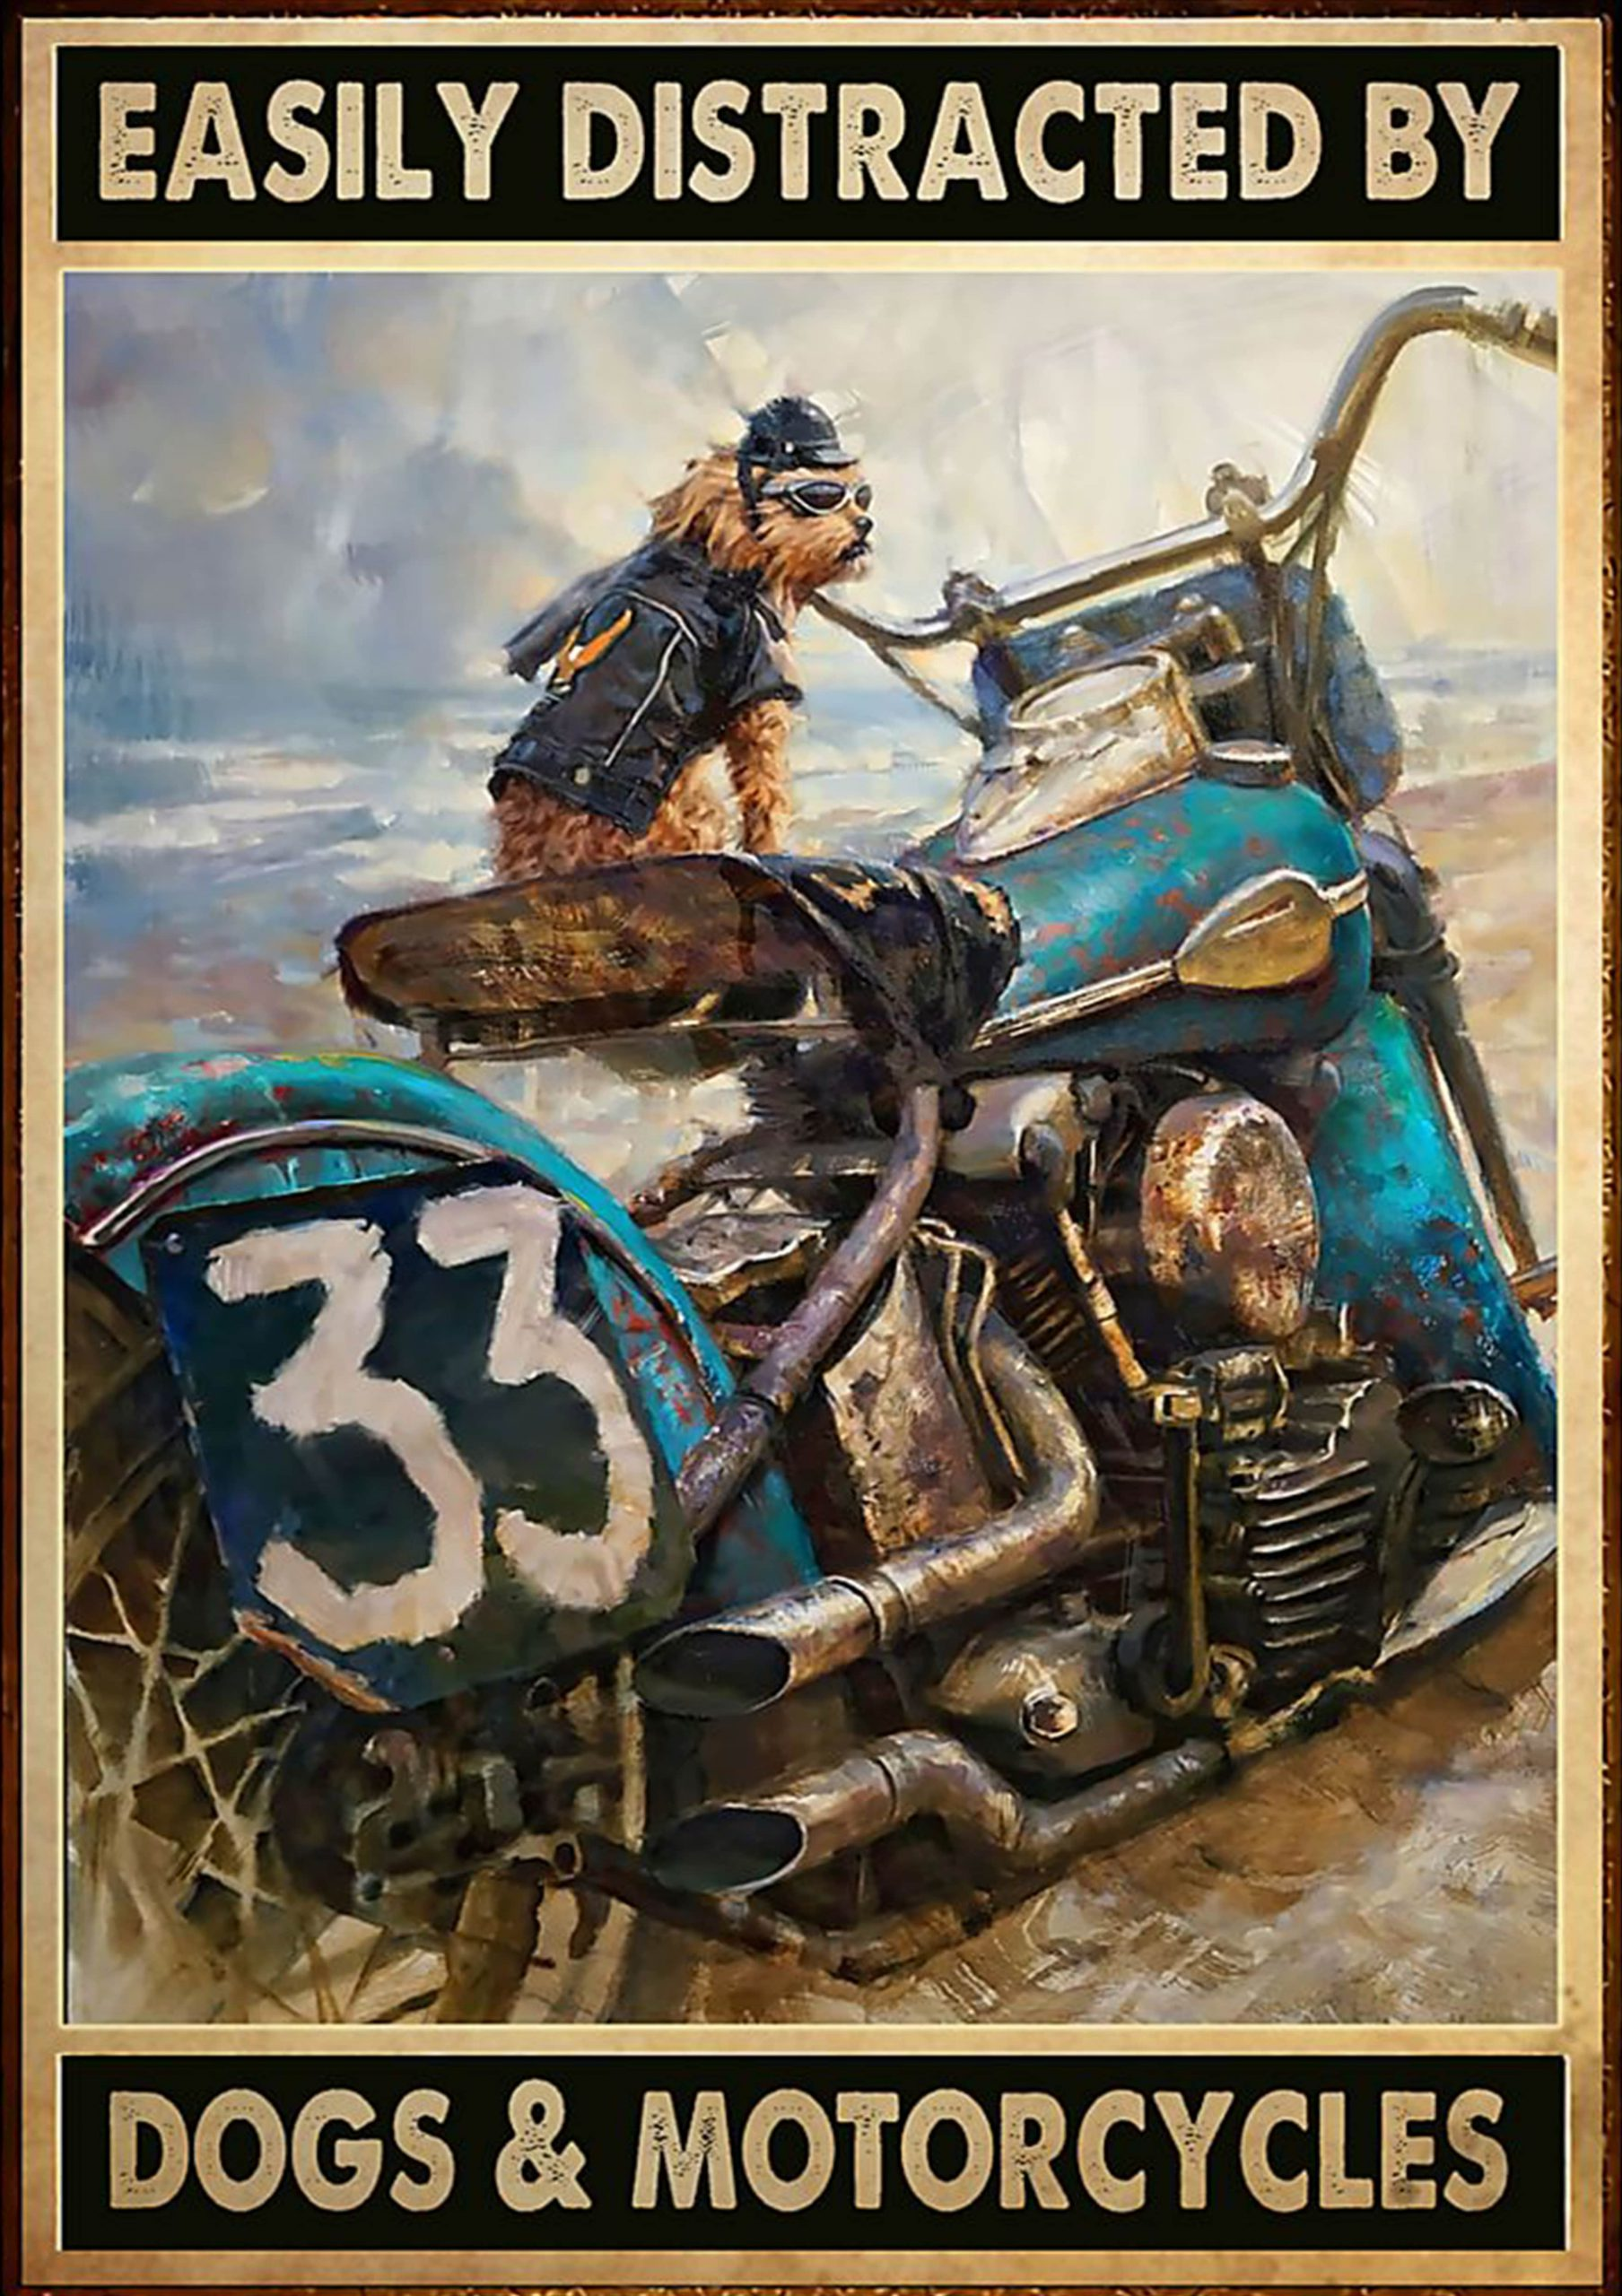 vintage easily distracted by dogs and motorcycles poster 1 - Copy (3)